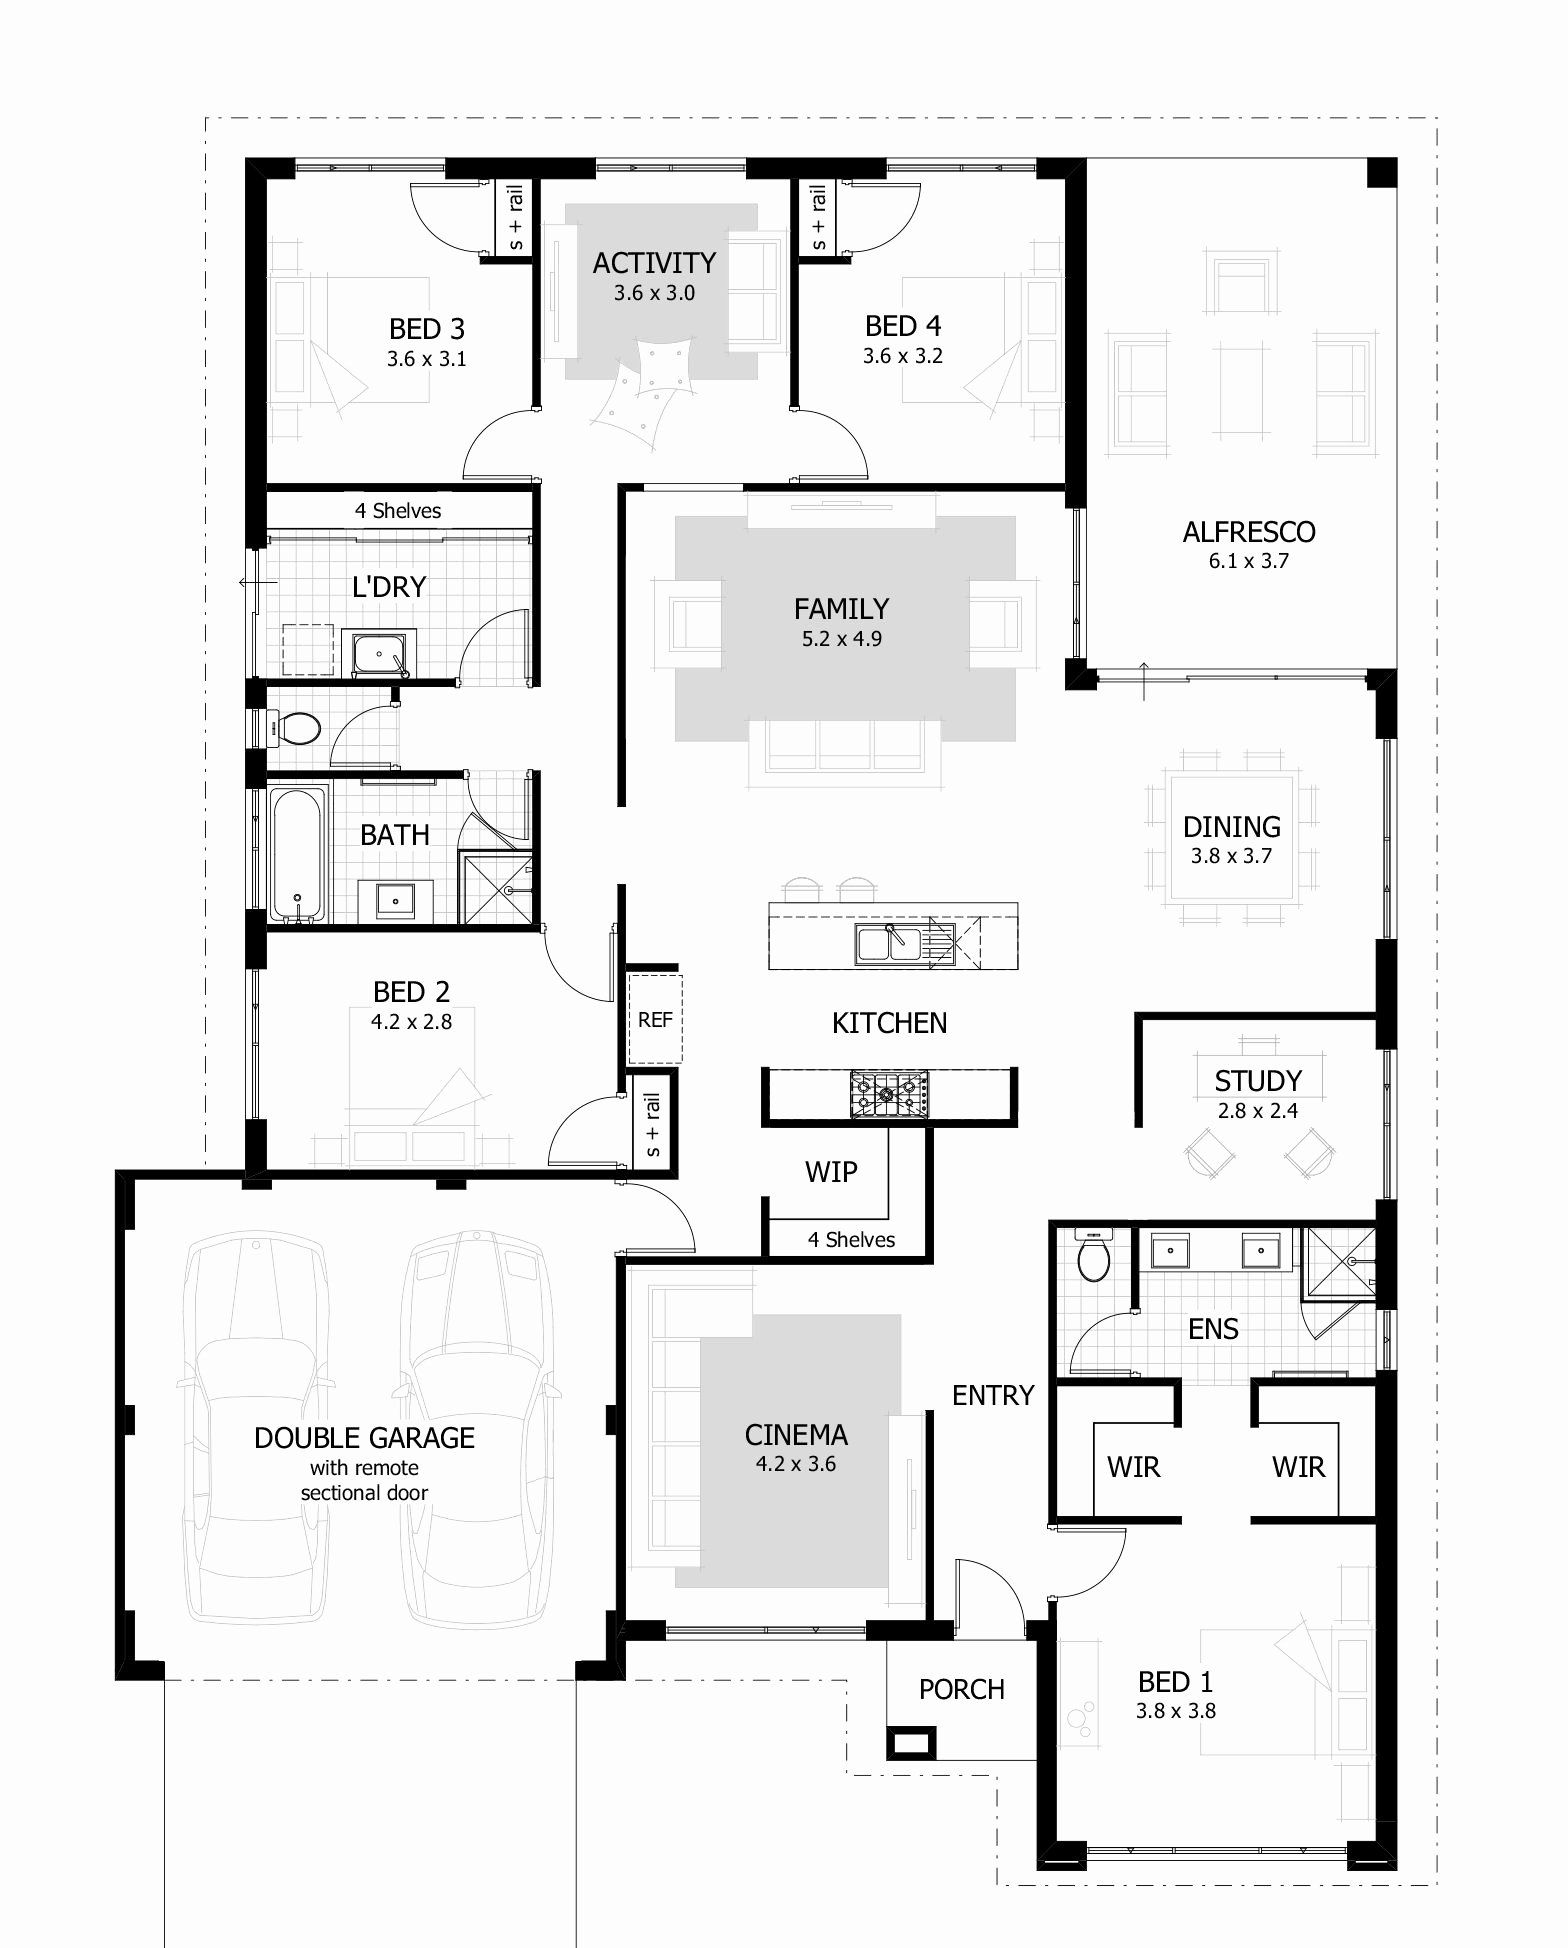 4 Bedroom Bungalow House Plans Fresh 4 Bedroom House Plans Home Designs With Images In 2020 Bungalow Floor Plans 4 Bedroom House Plans Bungalow House Plans